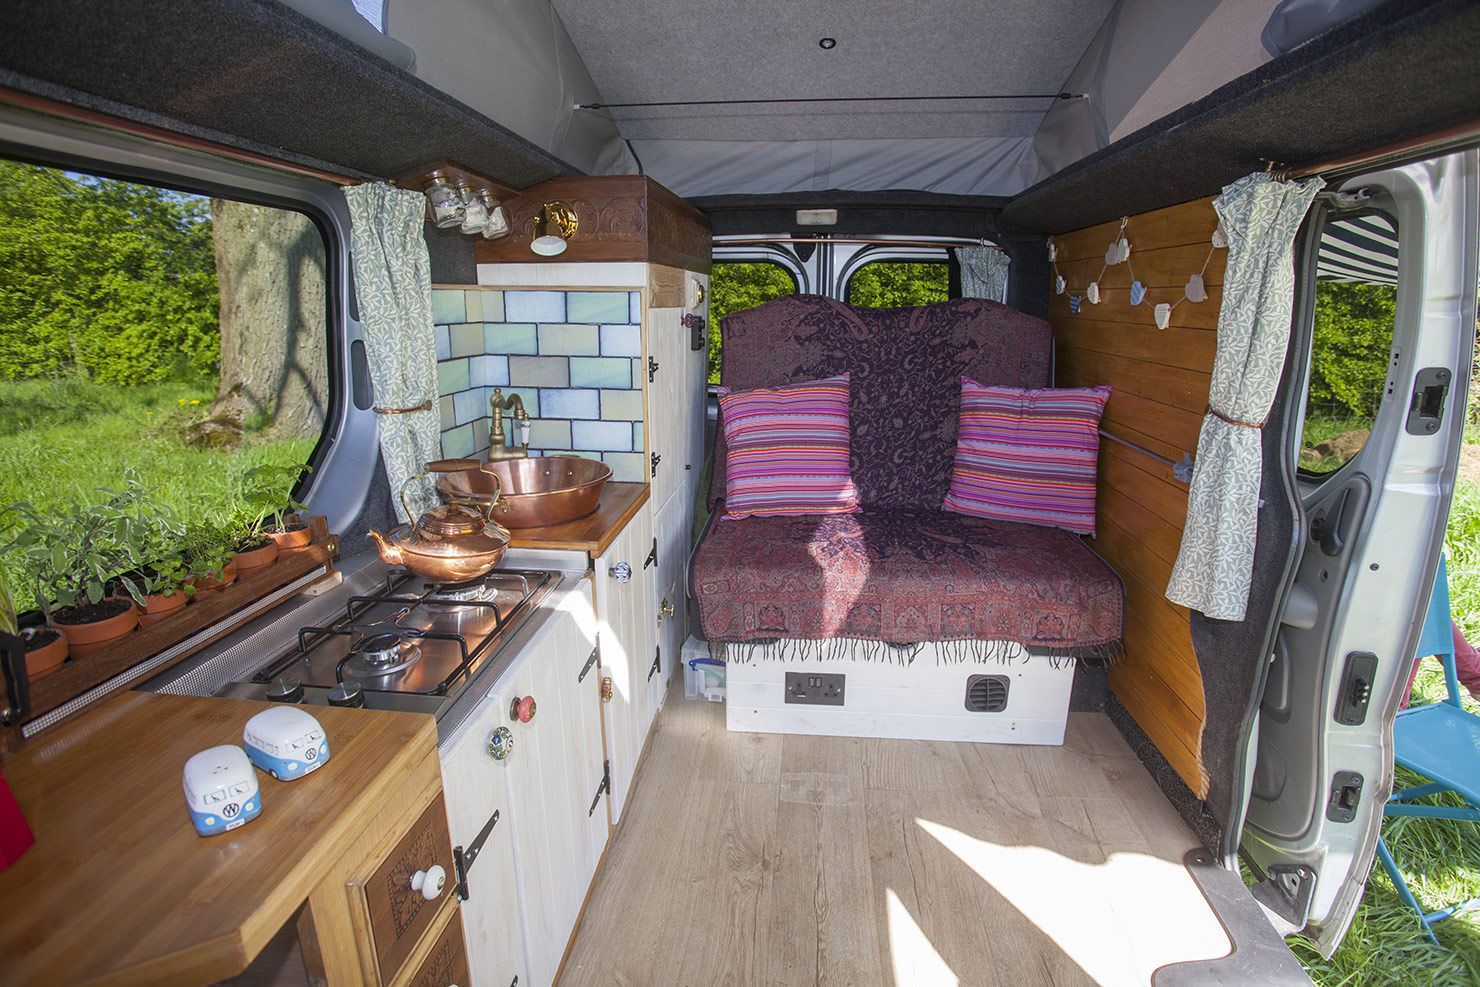 The spacious interior with Rock and Roll bed used as a bench seat and front seats rotated.